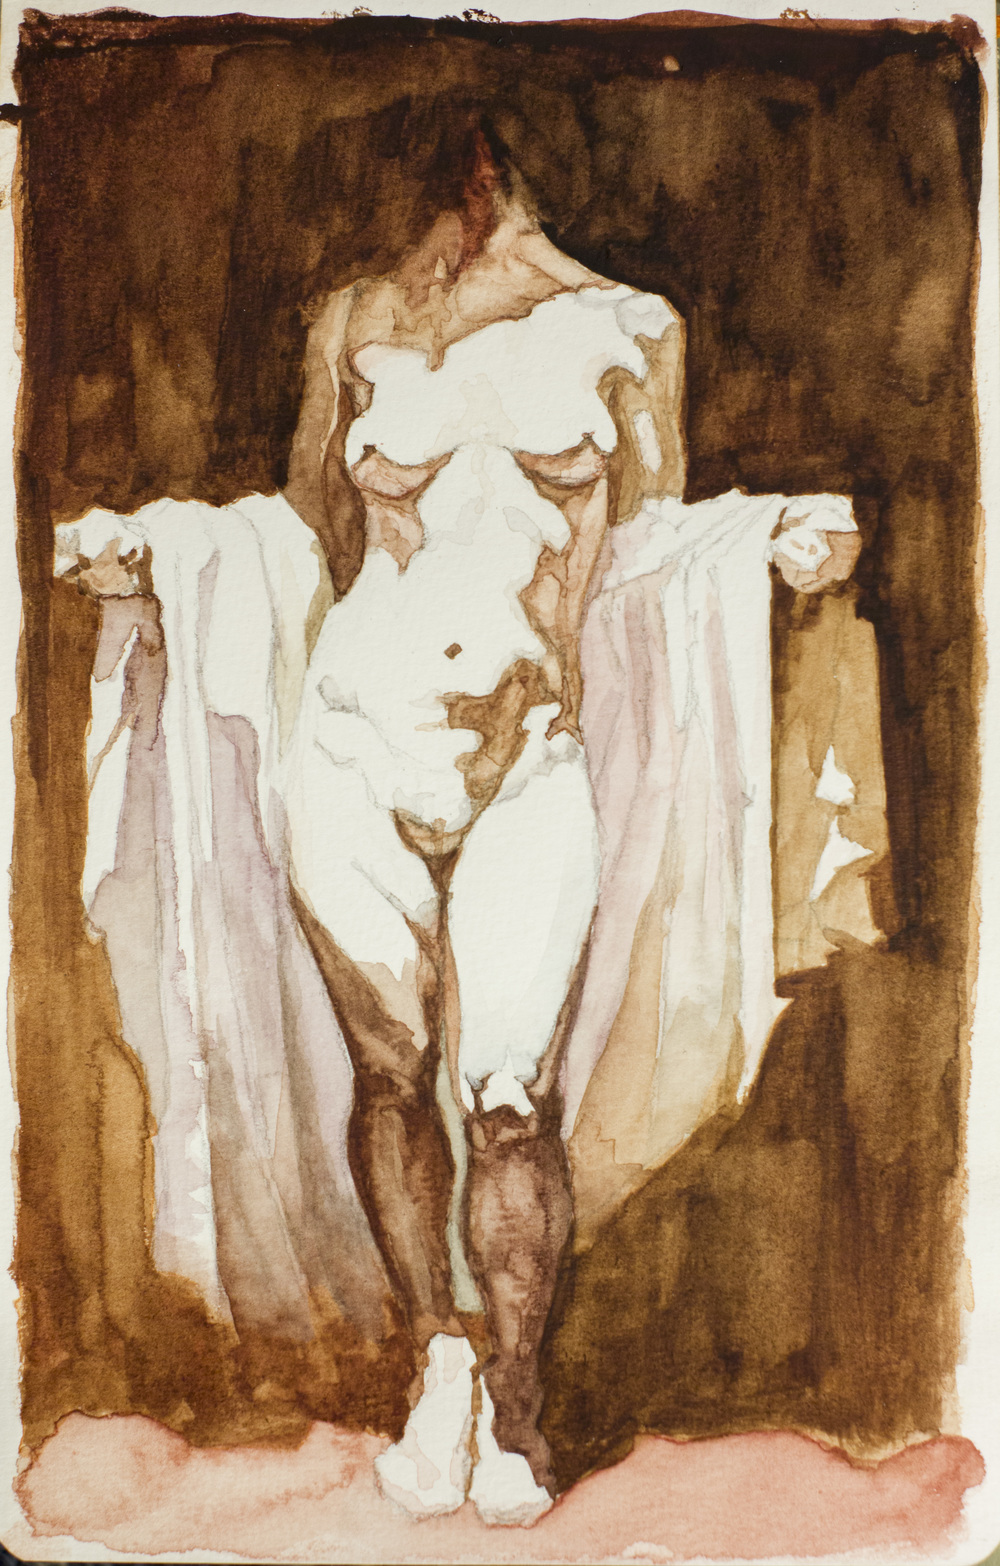 """Maledizione di venere"" - 5"" x 8"" watercolor on paper, Roberto Ferri copy. 2013"